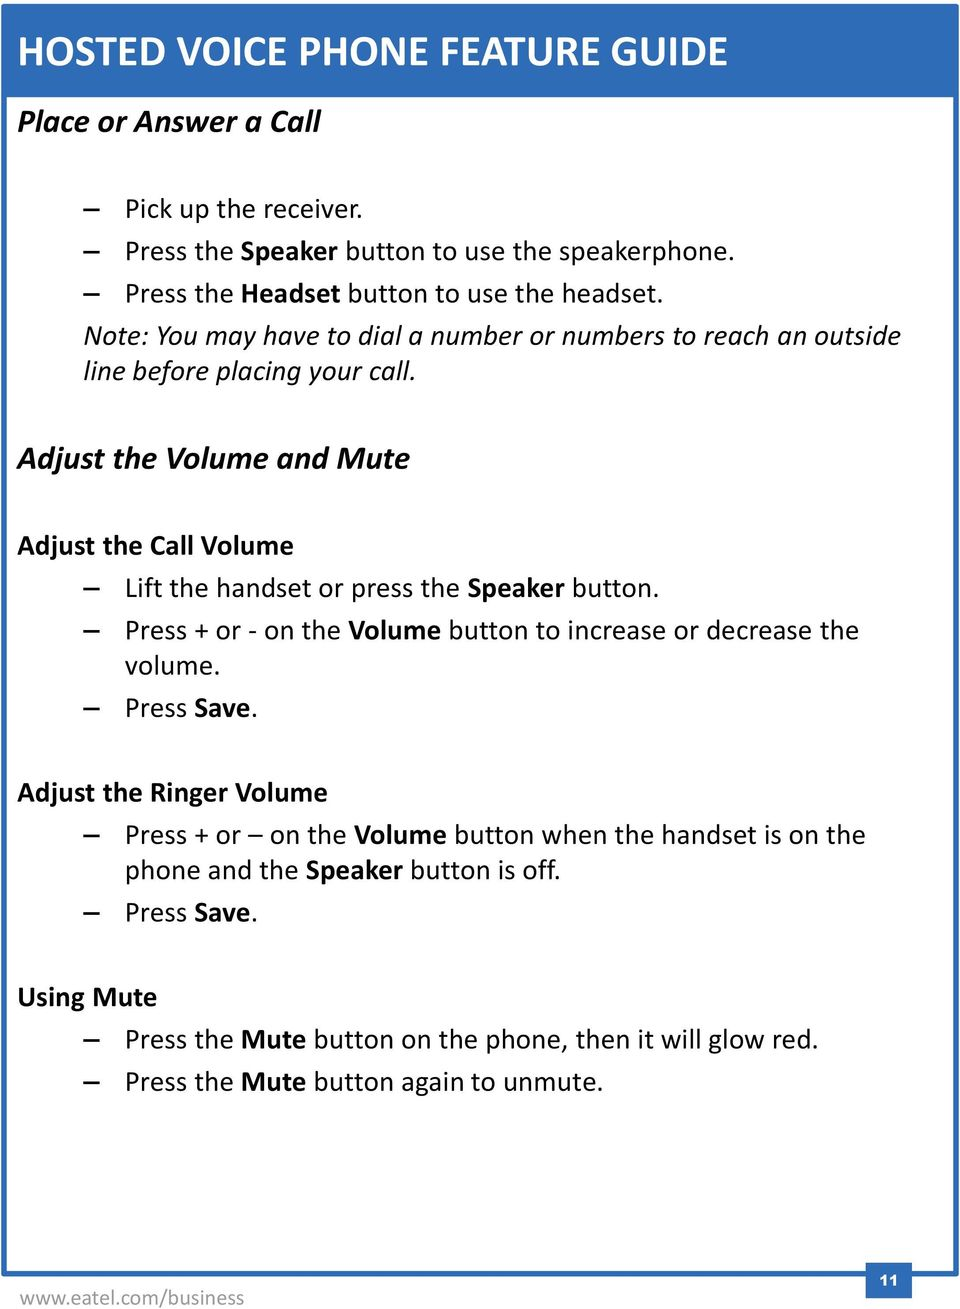 Adjust the Volume and Mute Adjust the Call Volume Lift the handset or press the Speaker button. Press + or - on the Volume button to increase or decrease the volume.